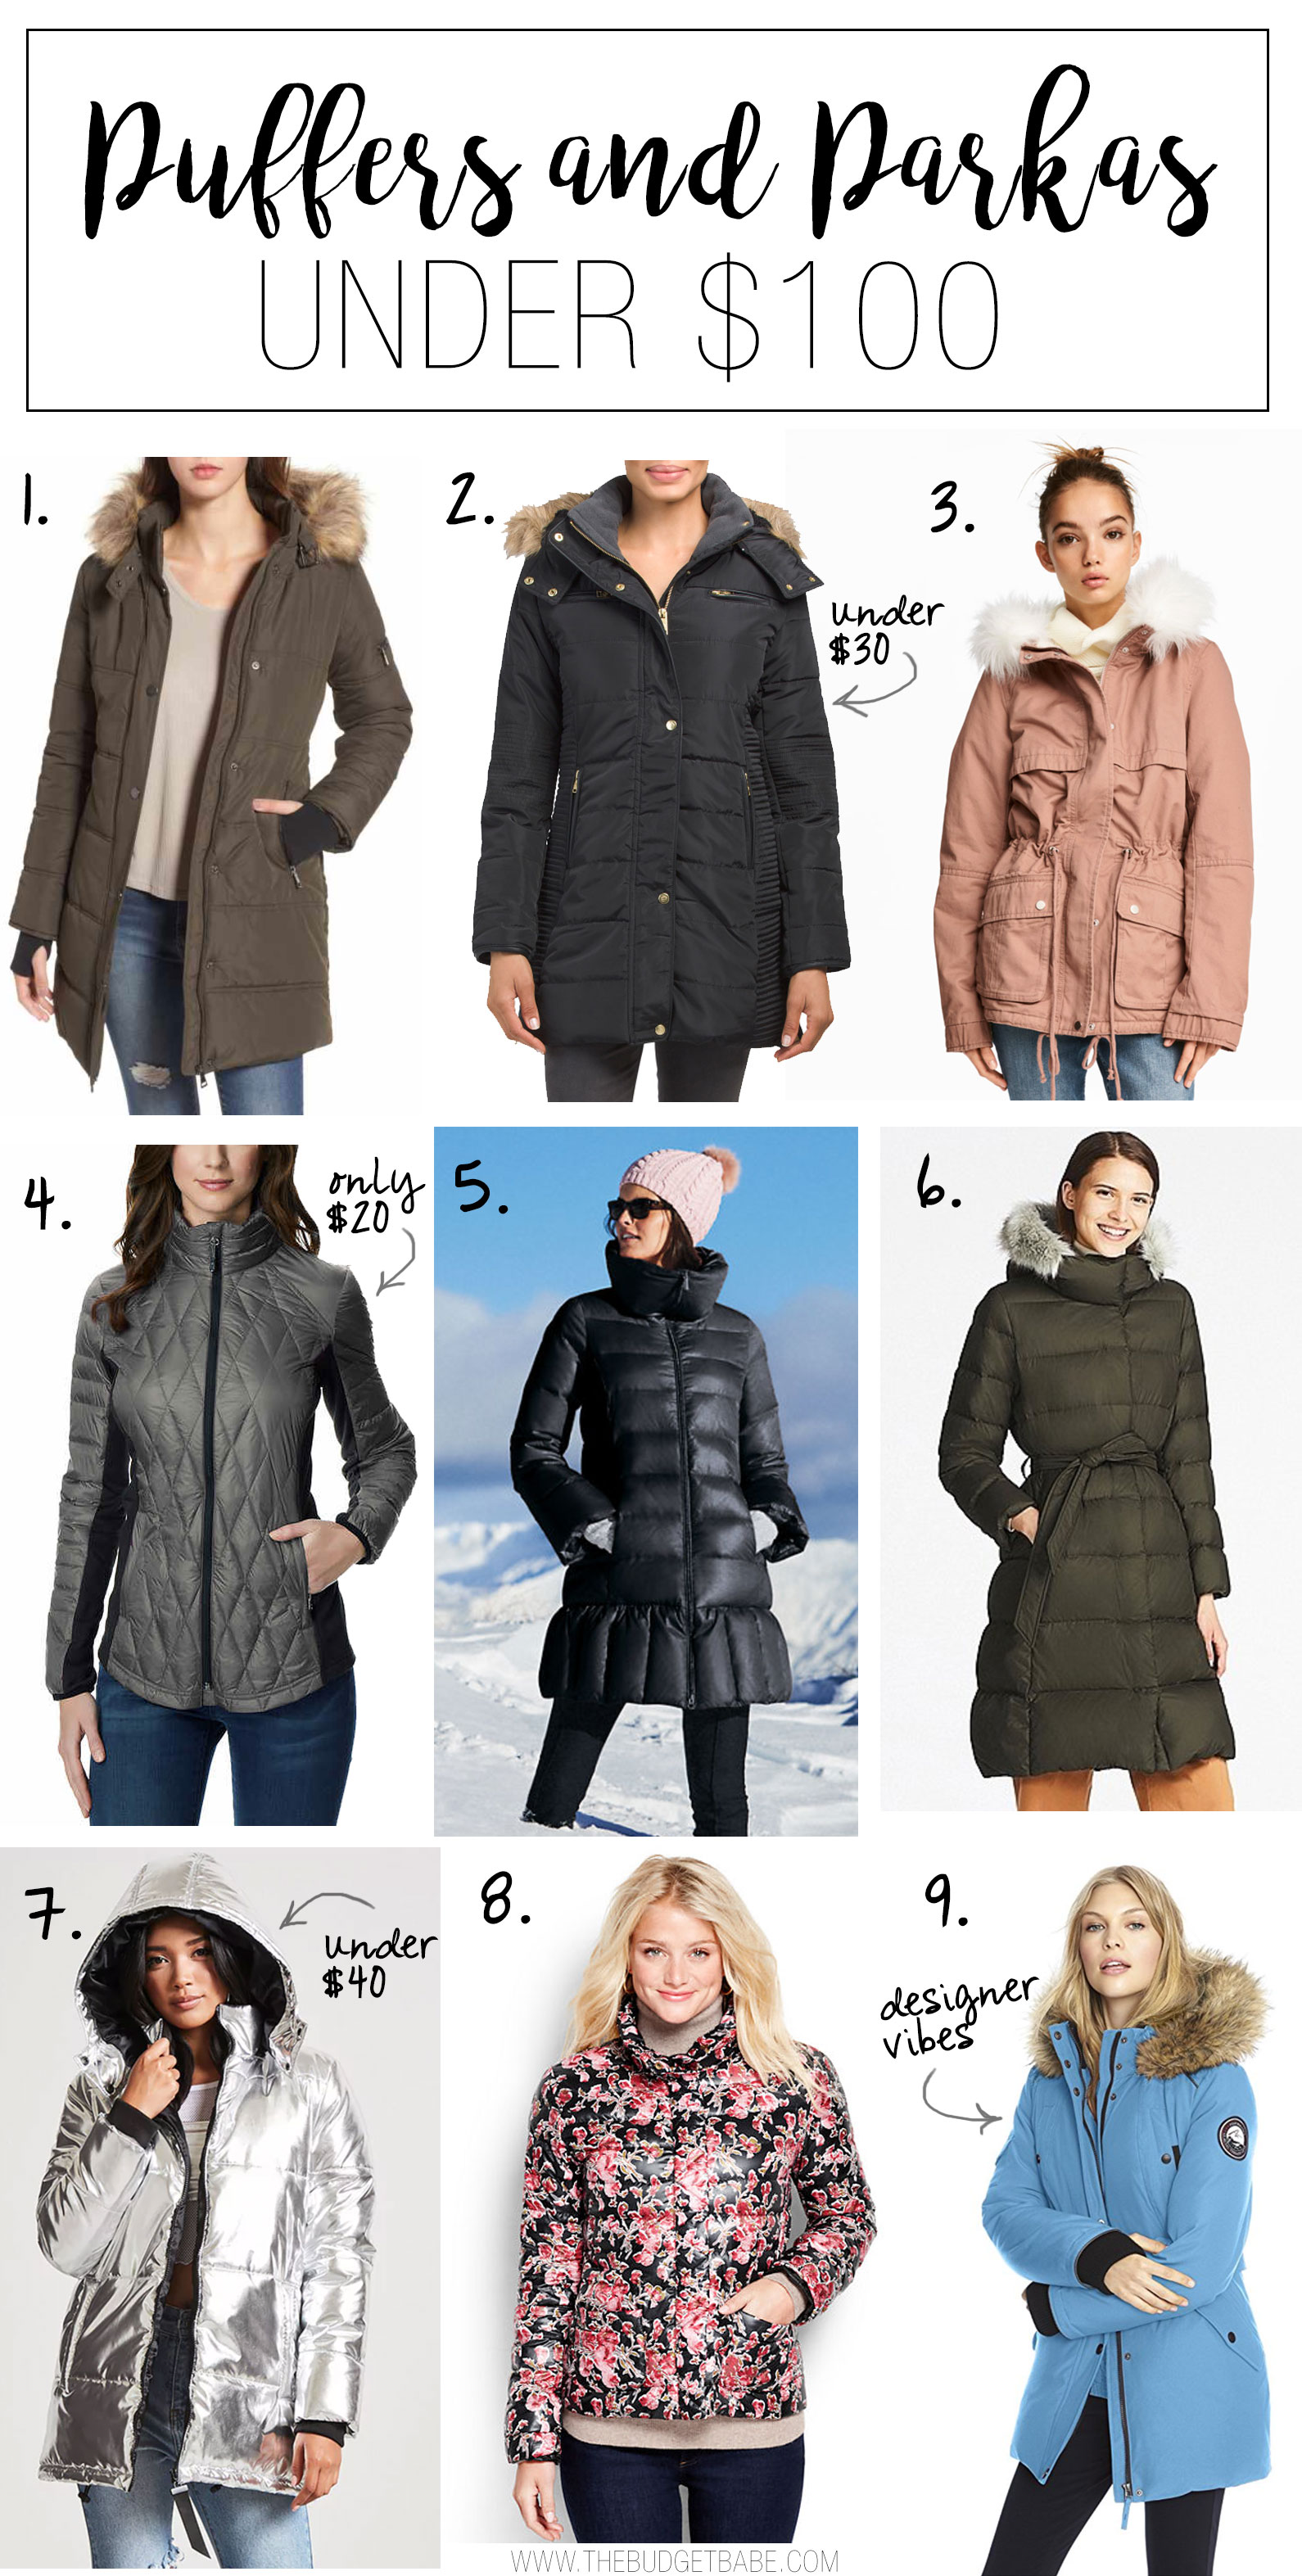 Here's where to buy a cheap & cute puffer or parka under $100!